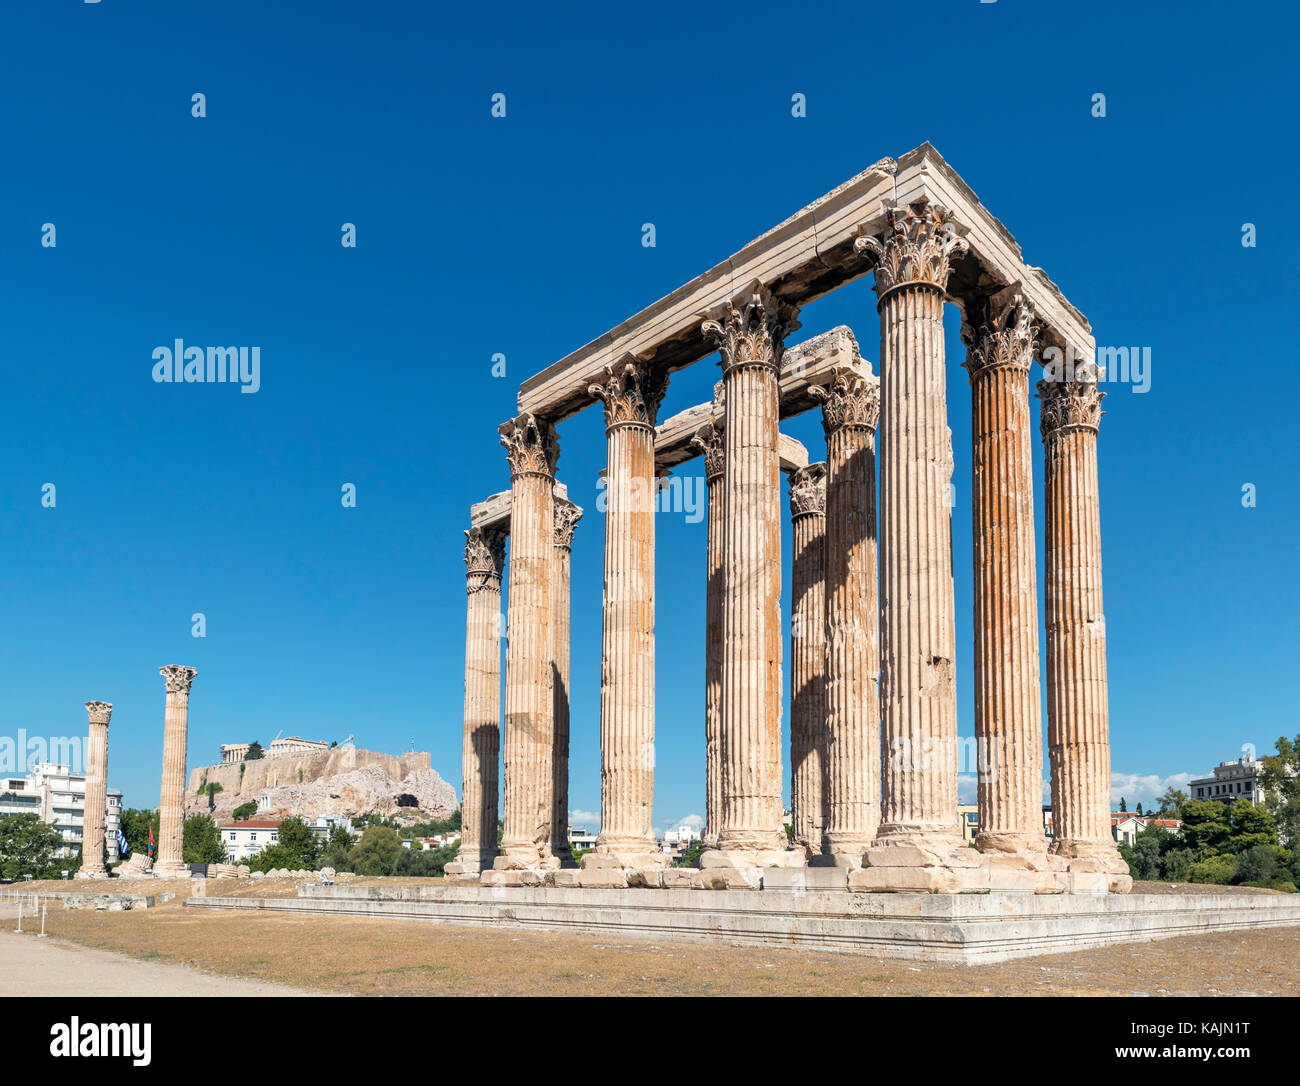 The Temple of Olympian Zeus (Olympeion) with the Acropolis in the background, Athens, Greece - Stock Image